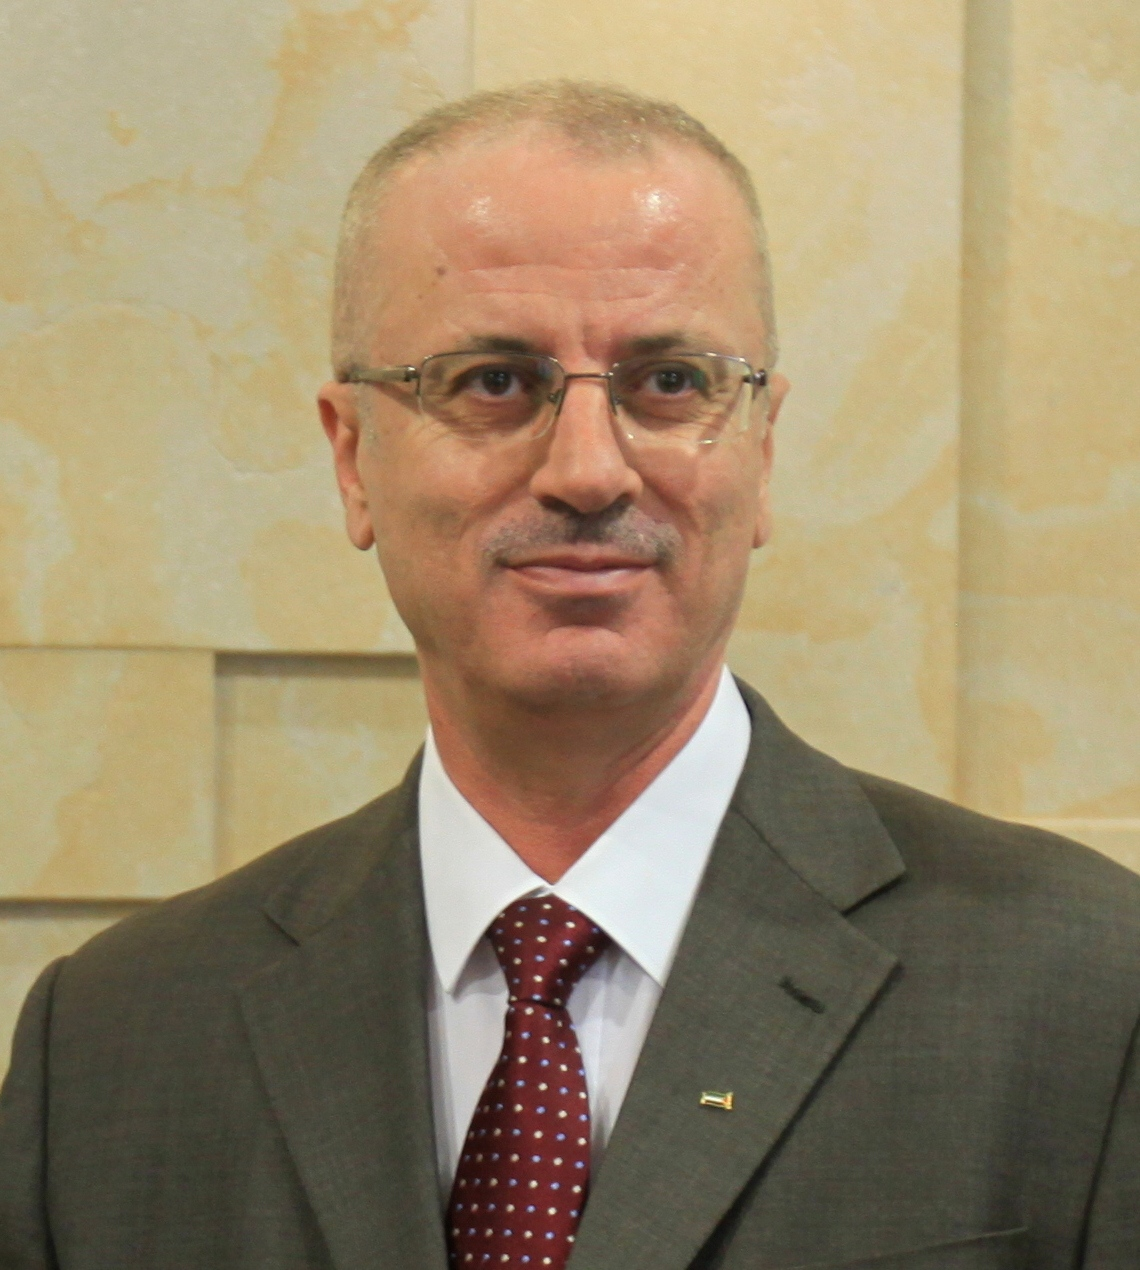 Palestinian Authority Prime Minister Rami Hamdallah. Credit: Wikimedia Commons.